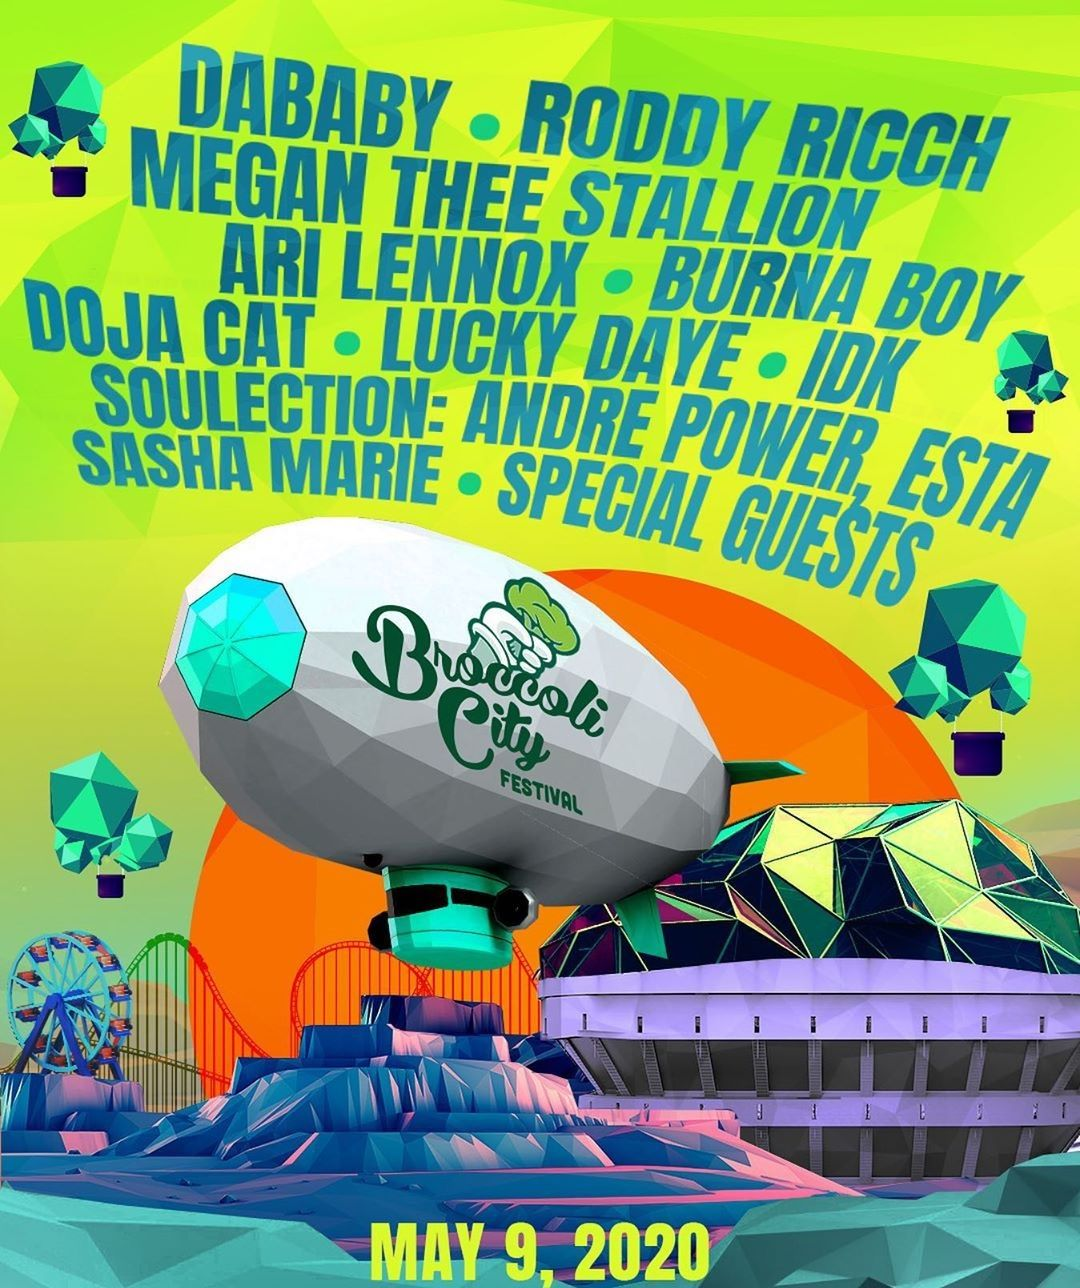 Broccoli City Festival 2020